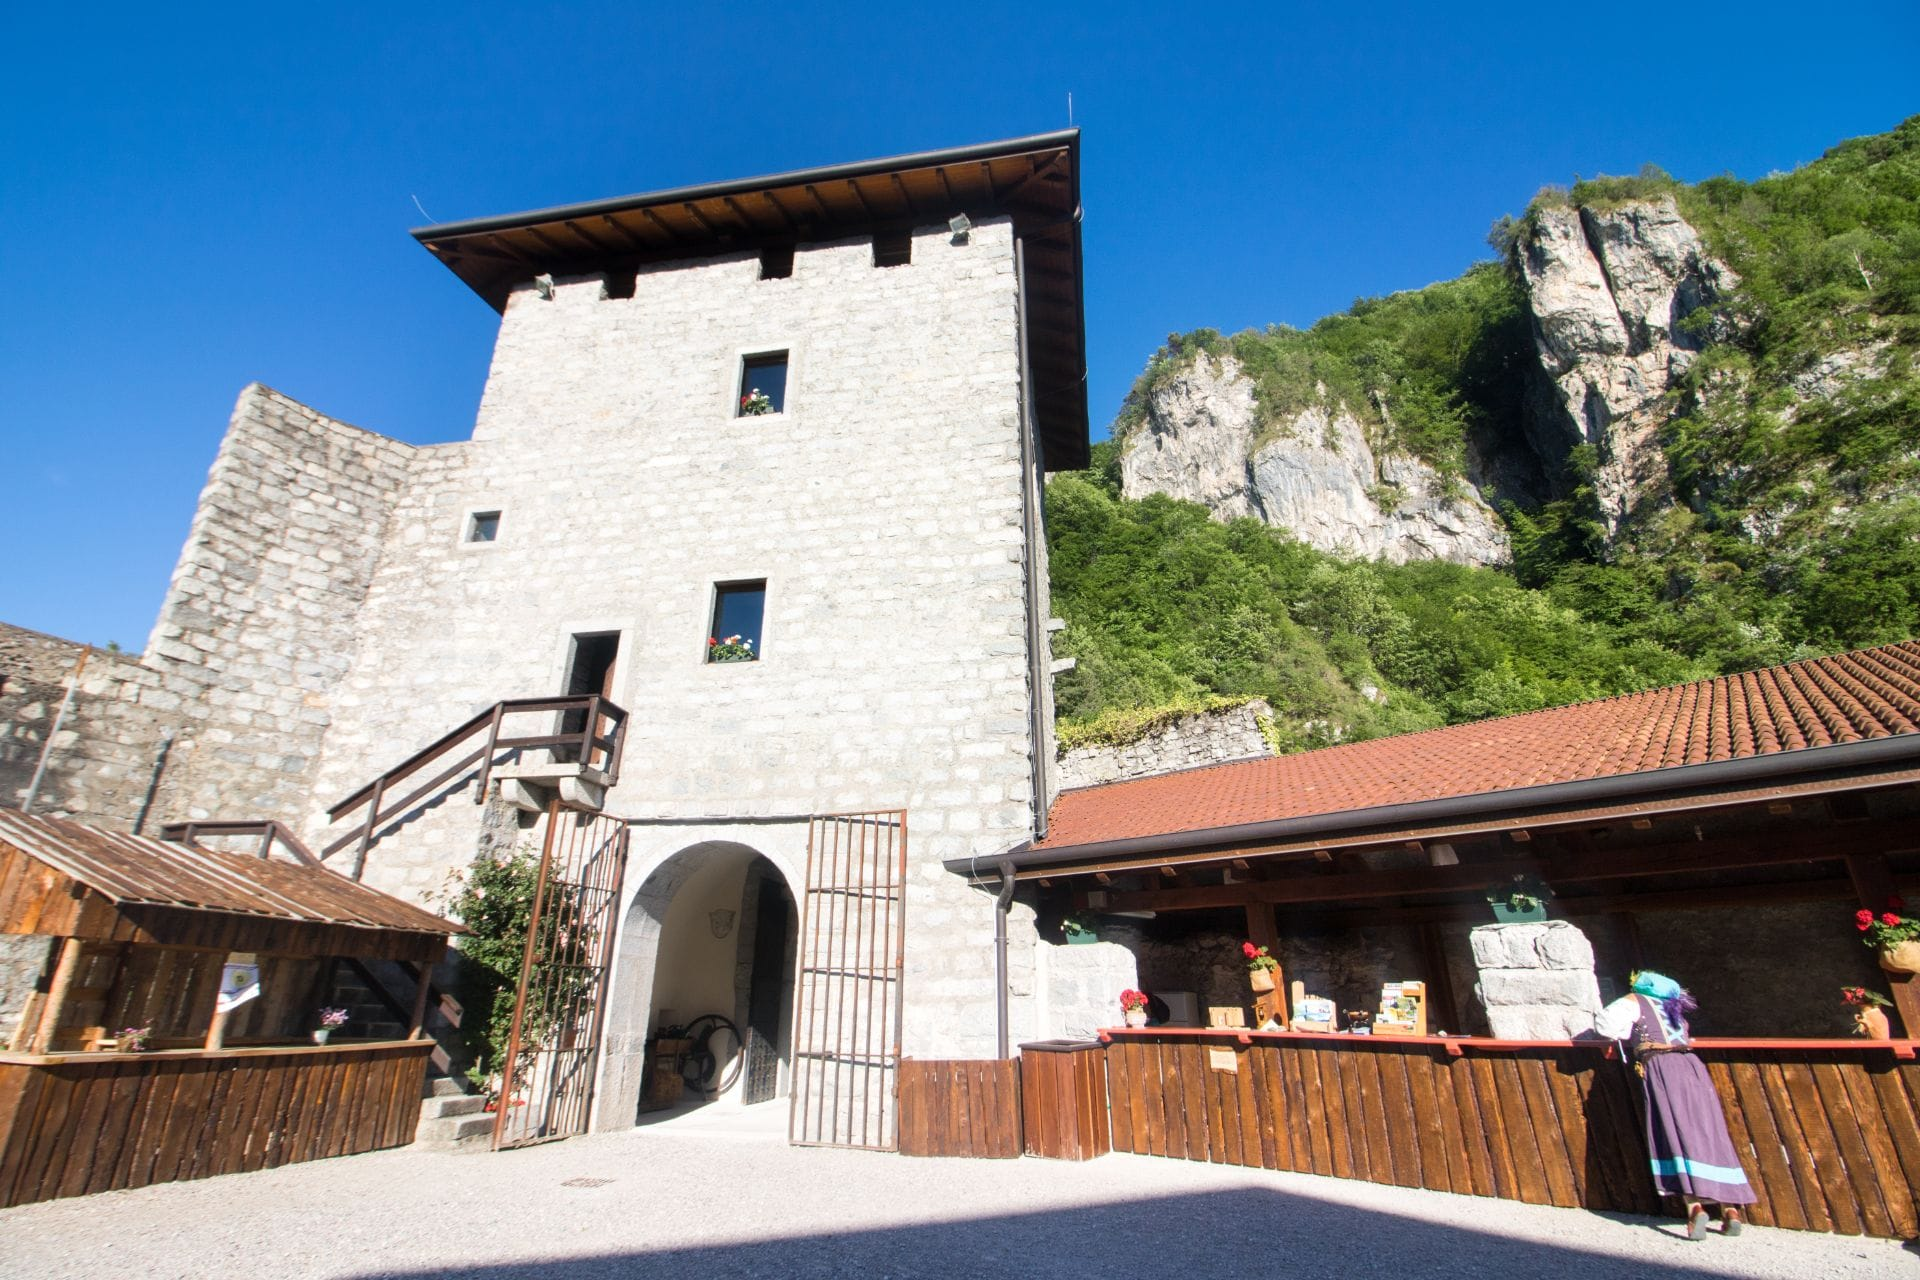 old-italian-castle-courtyard-set-against-cliff-castello-san-giovanni-valle-del-chiese-trentino-italy